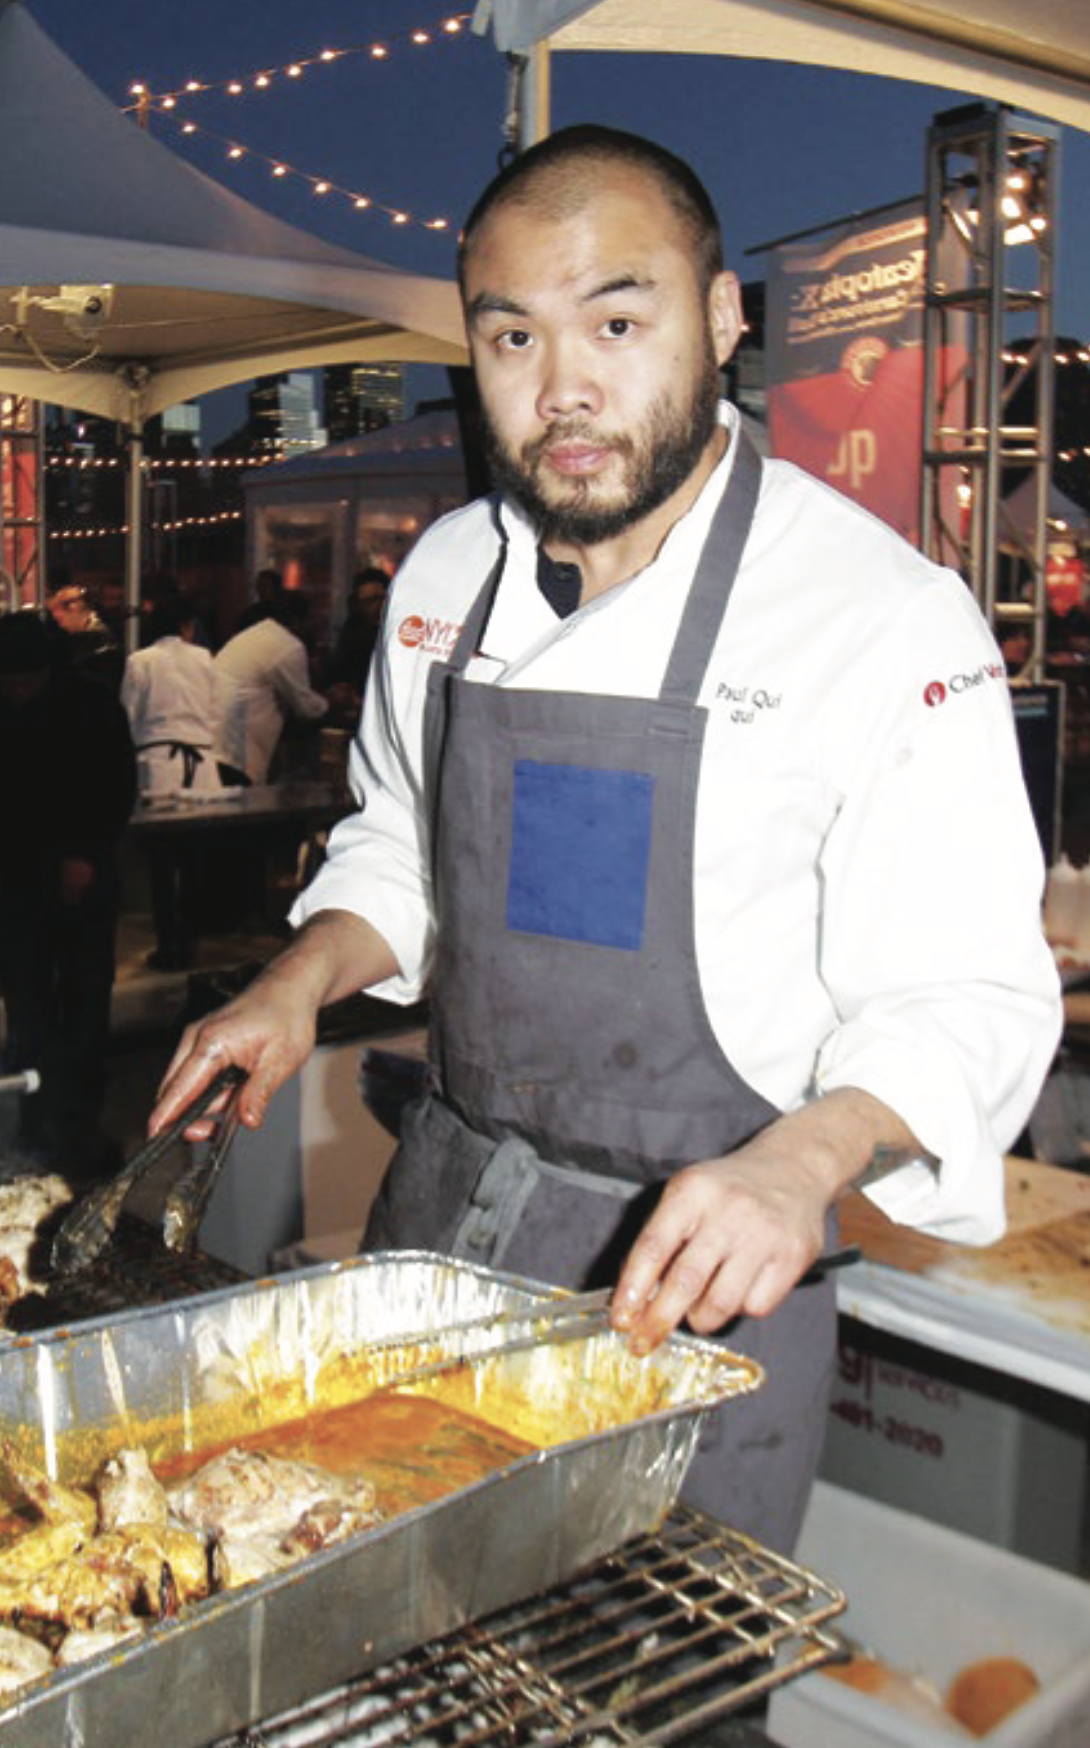 Fil-Am Top Chef Winner, Paul Qui, On His Arrest And Rebuilding His Career